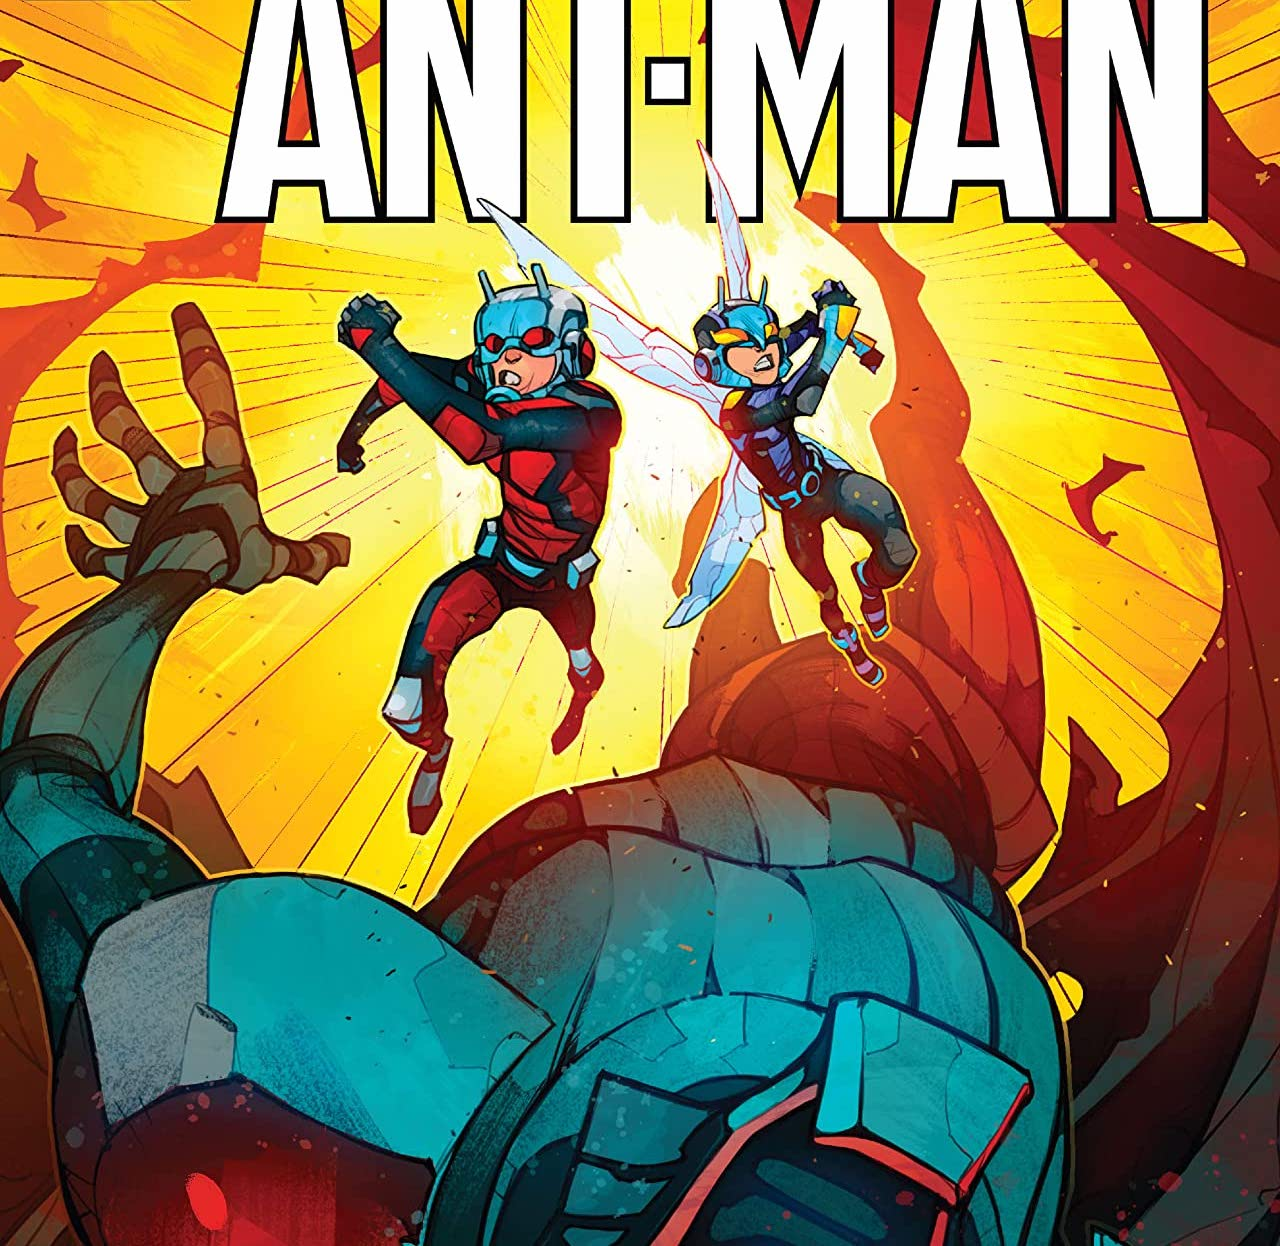 Ant-Man gets the finale he deserves.